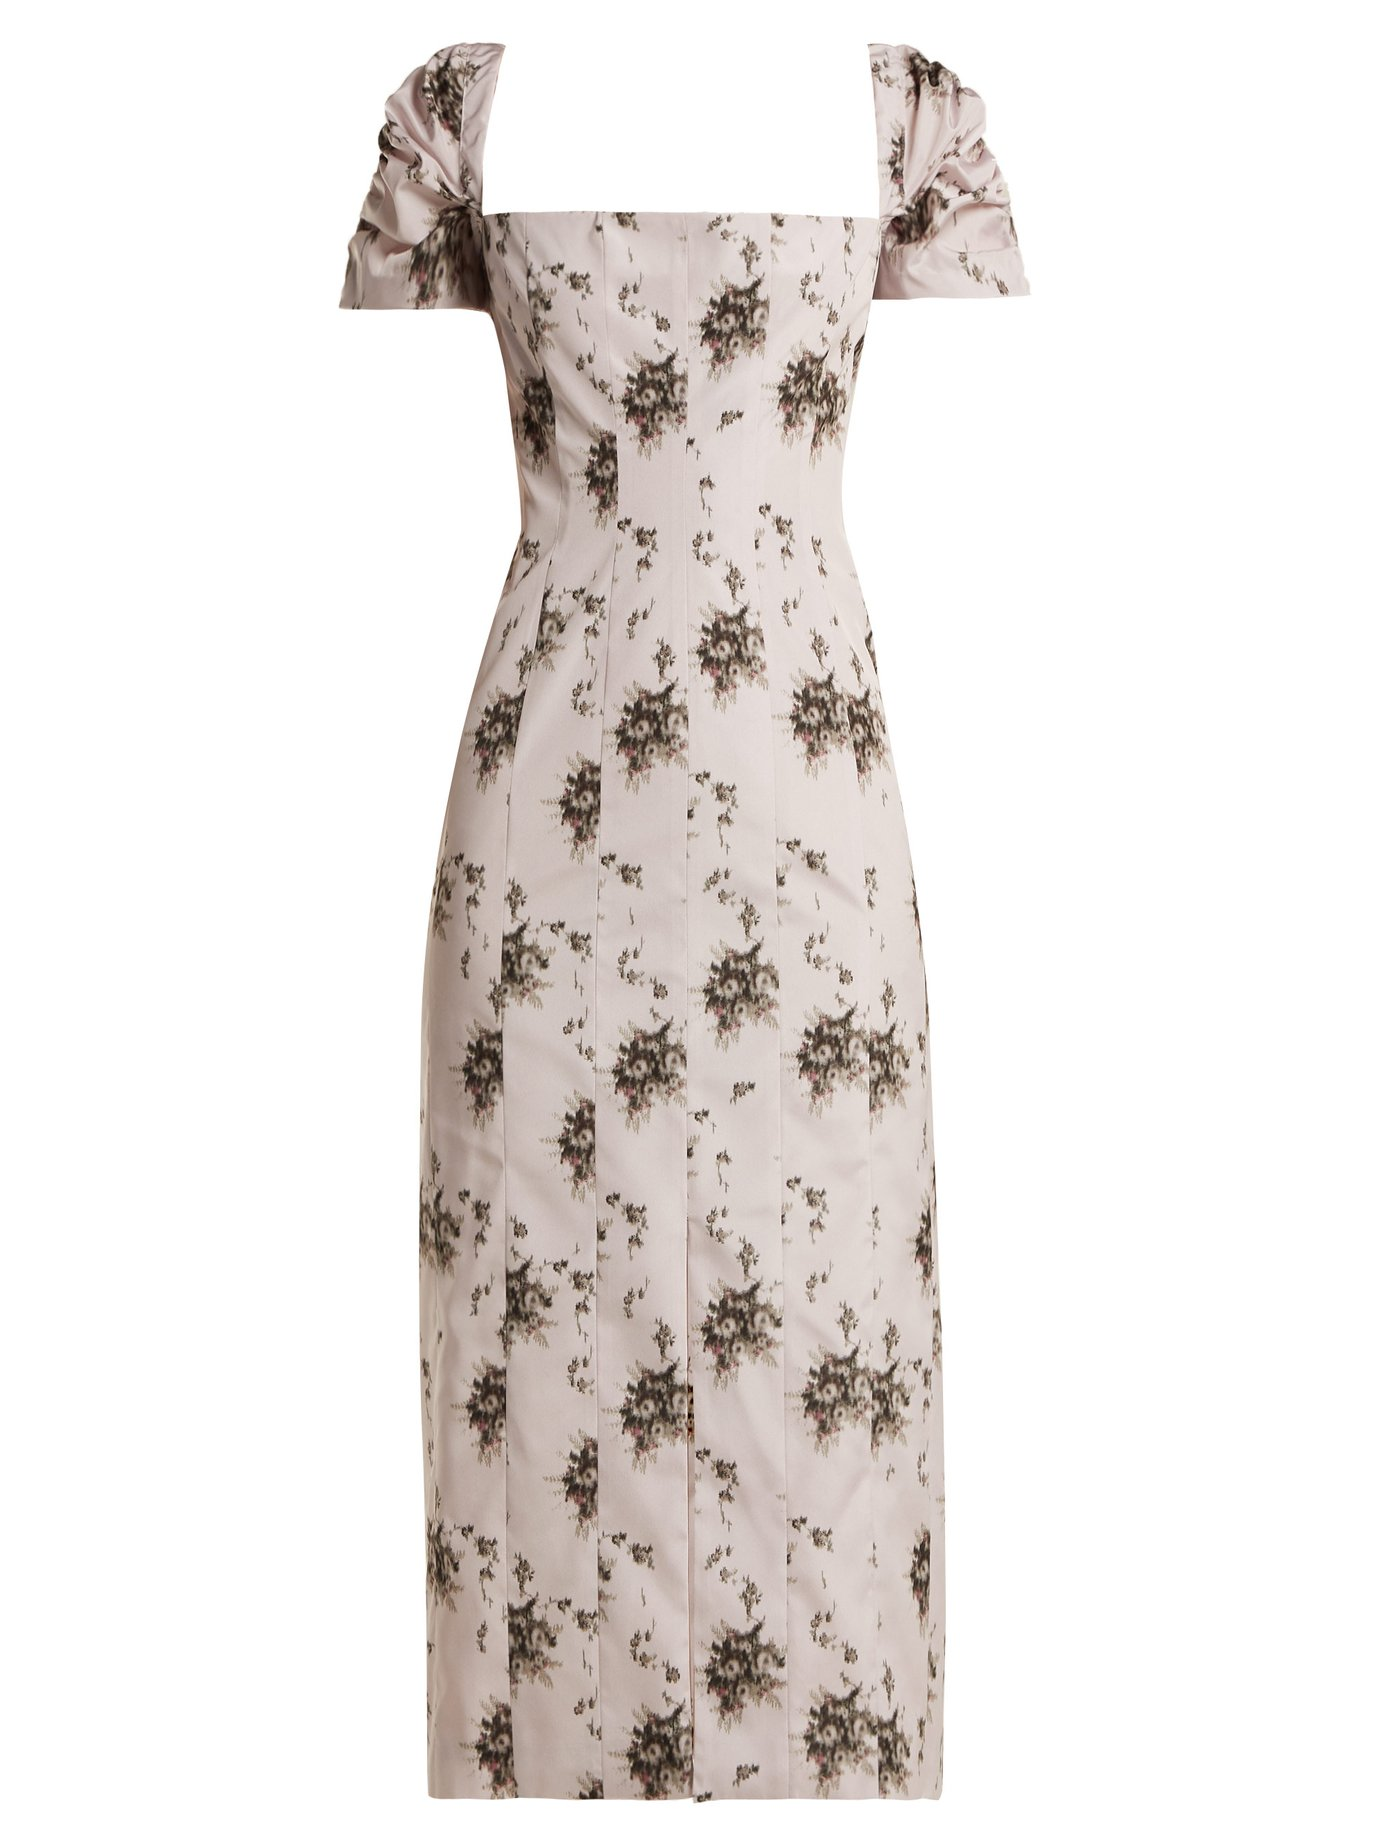 Brock Collection 'Odilia' Floral Print Midi Dress-Meghan Markle